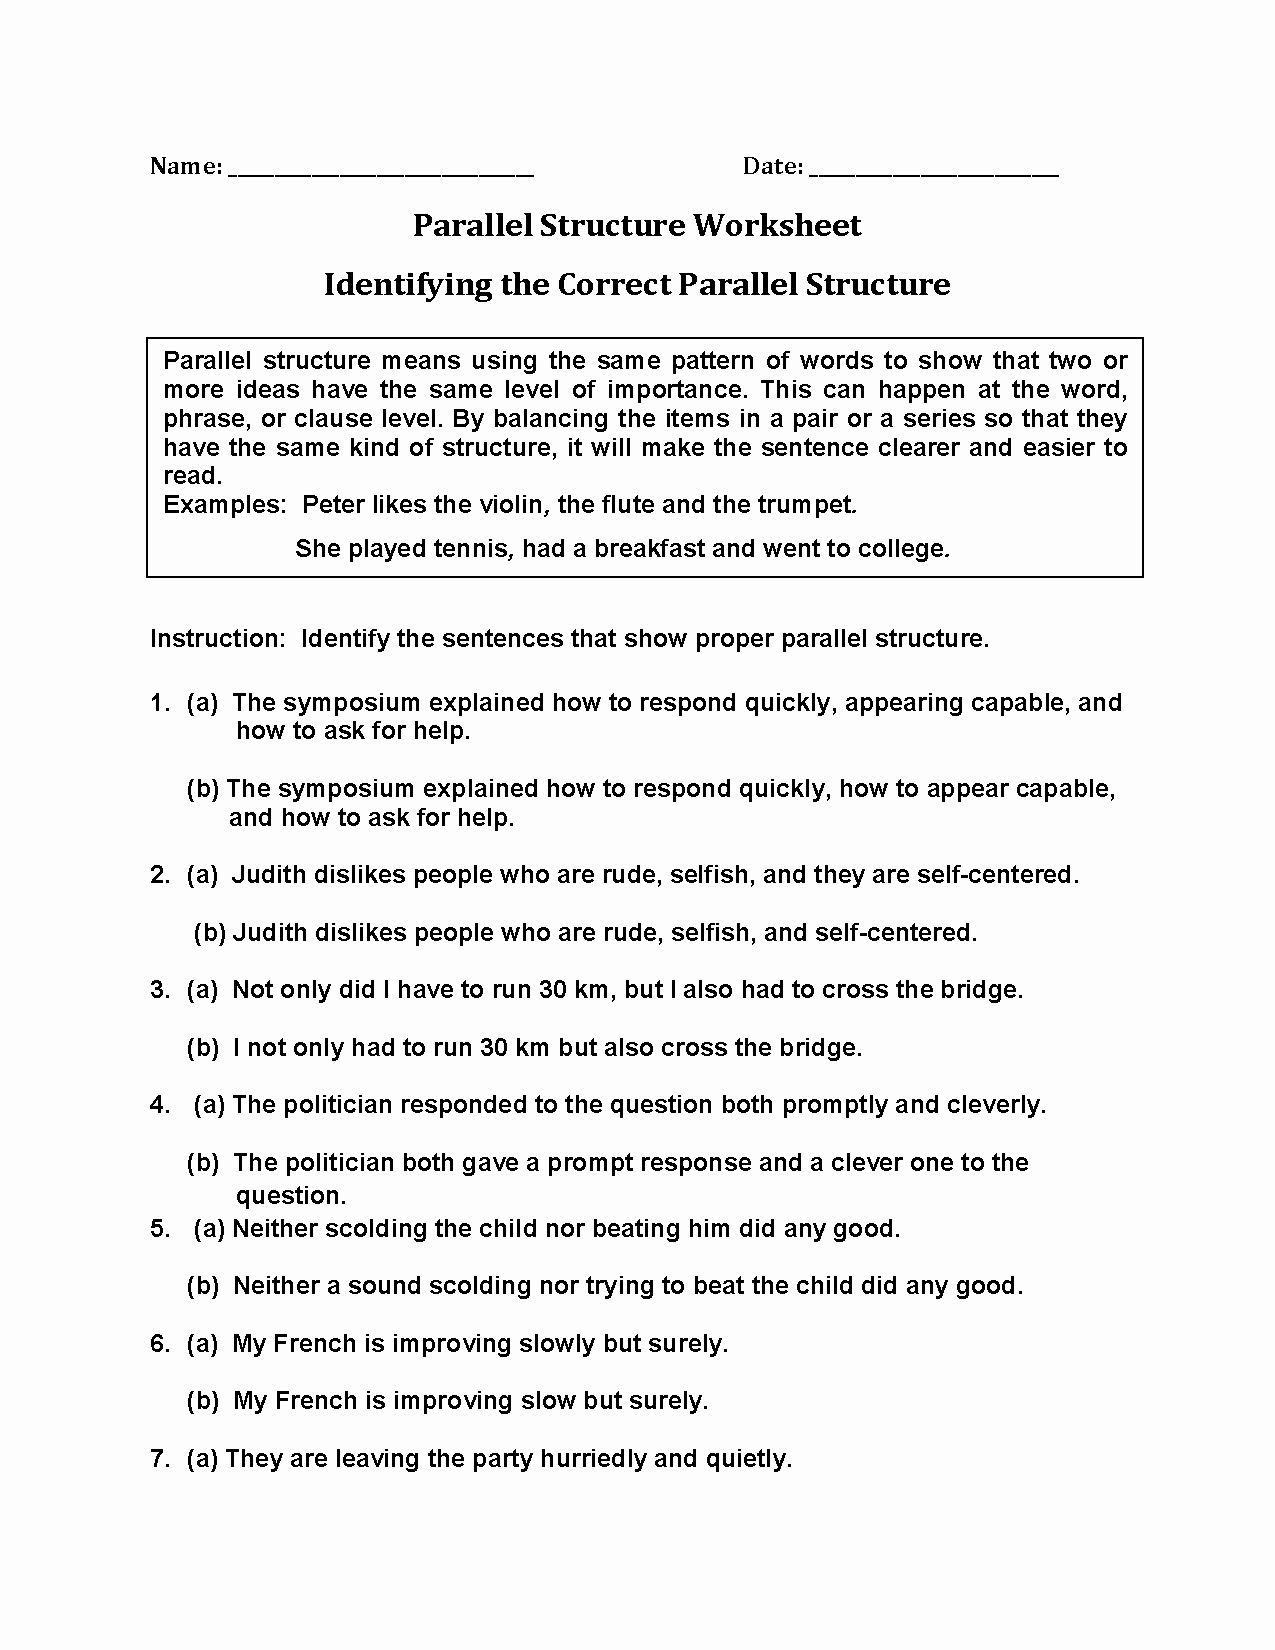 Parallel Structure Worksheet with Answers New Englishlinx